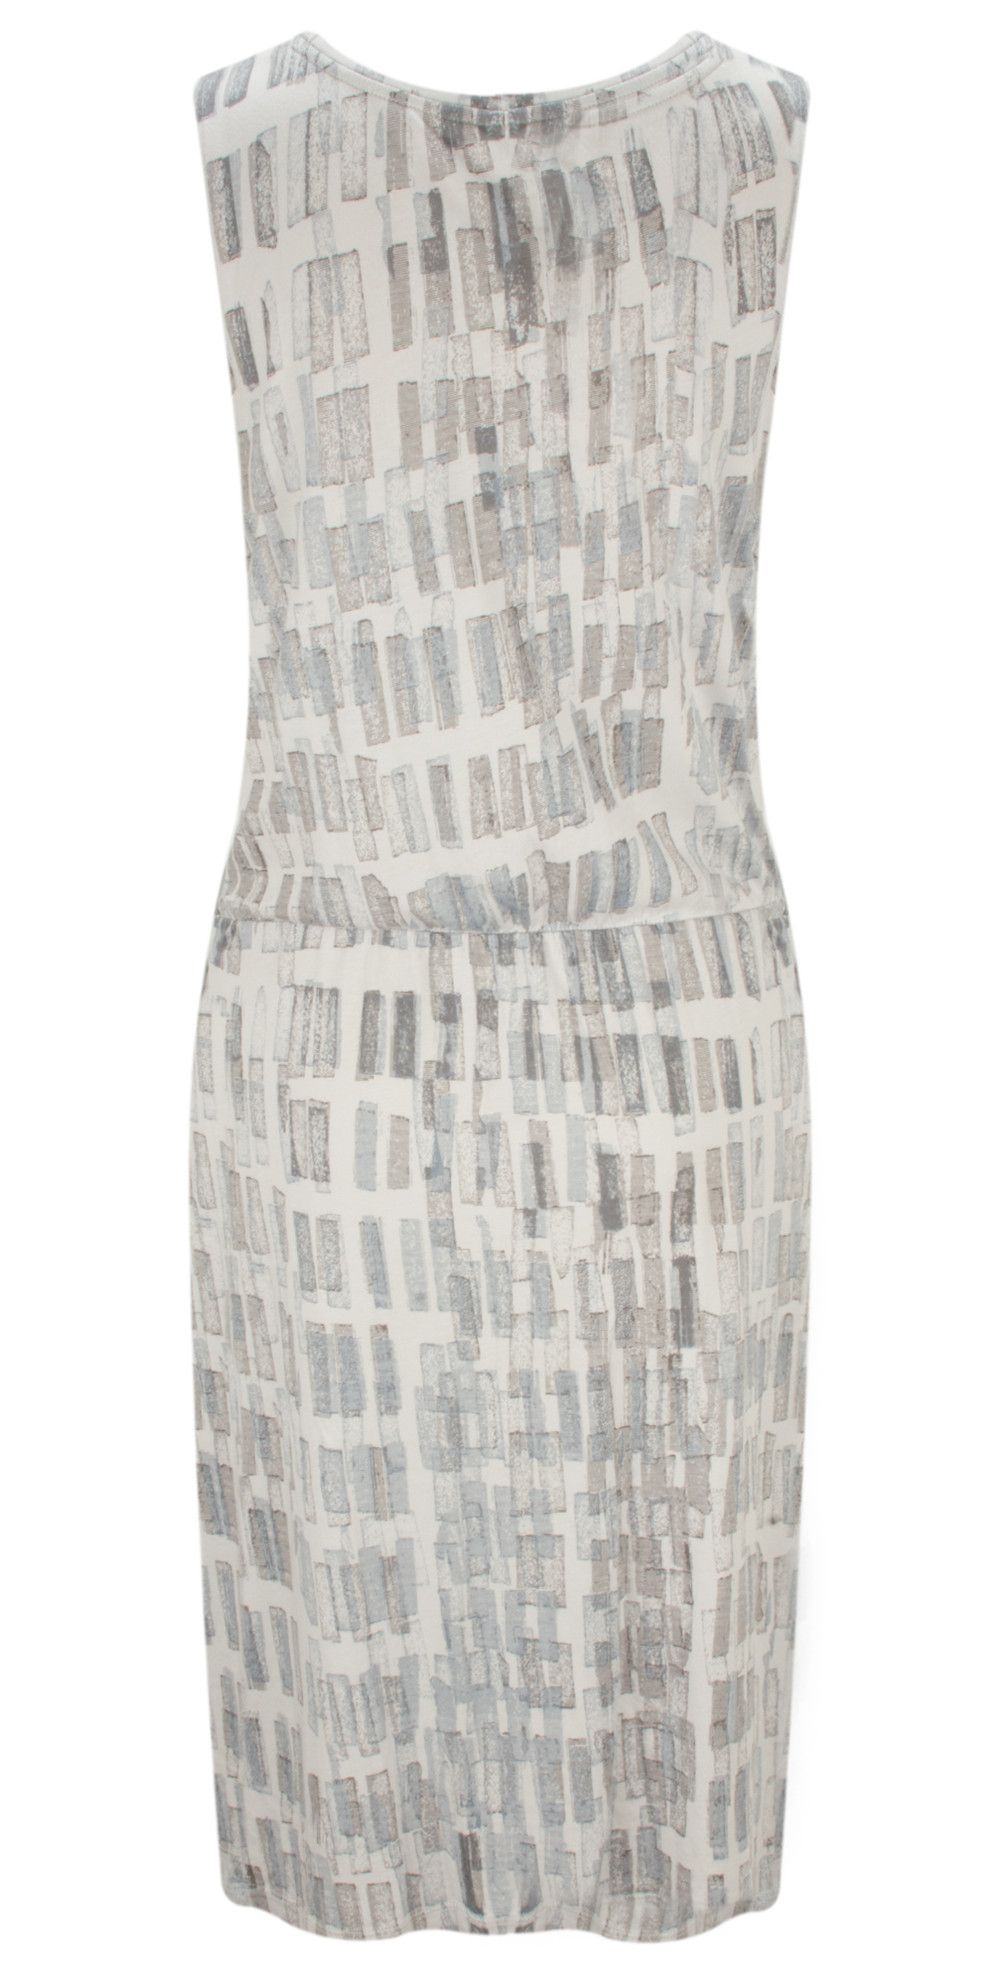 Texture Print Dress with Tie Detail main image